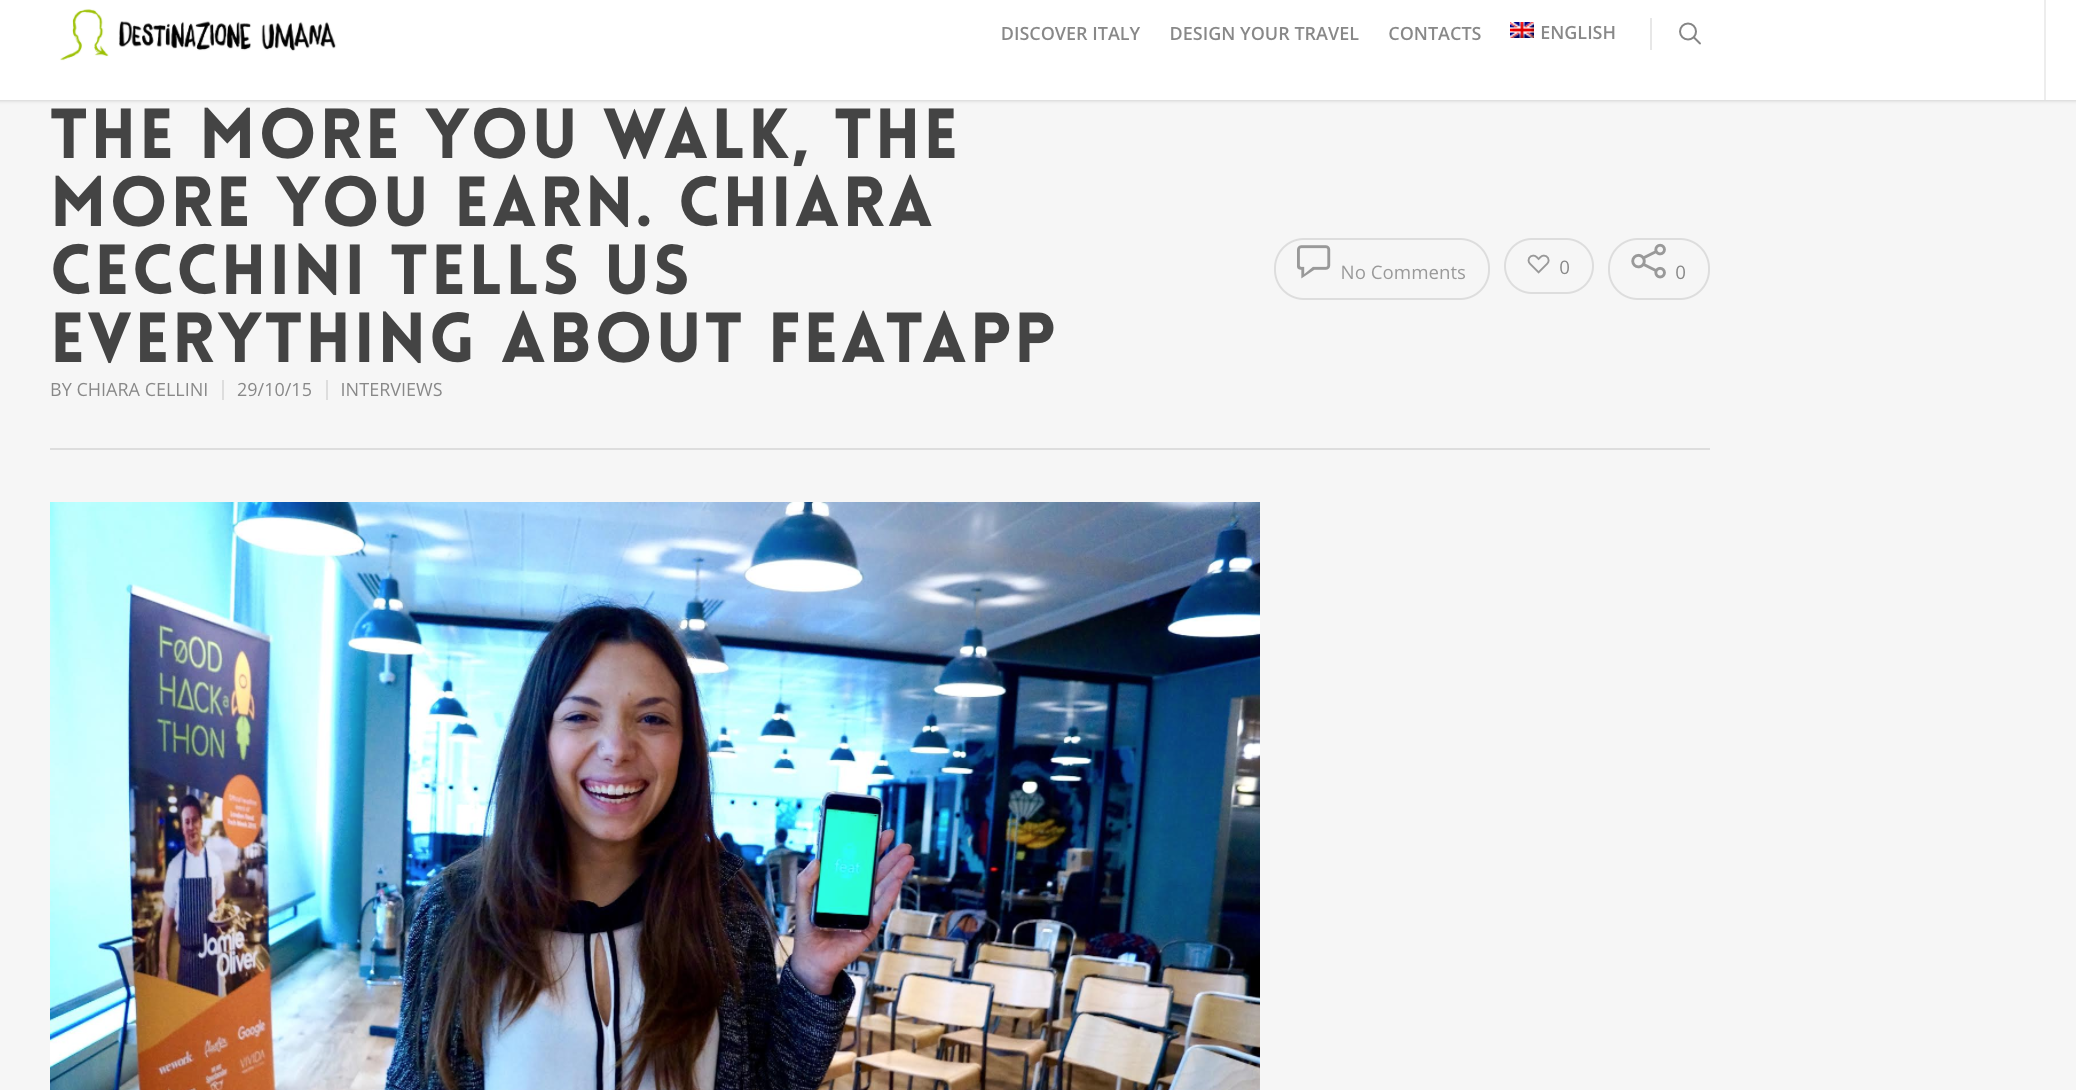 THE MORE YOU WALK, THE MORE YOU EARN. CHIARA CECCHINI TELLS US EVERYTHING ABOUT FEATAPP - Human Destination, October 2015